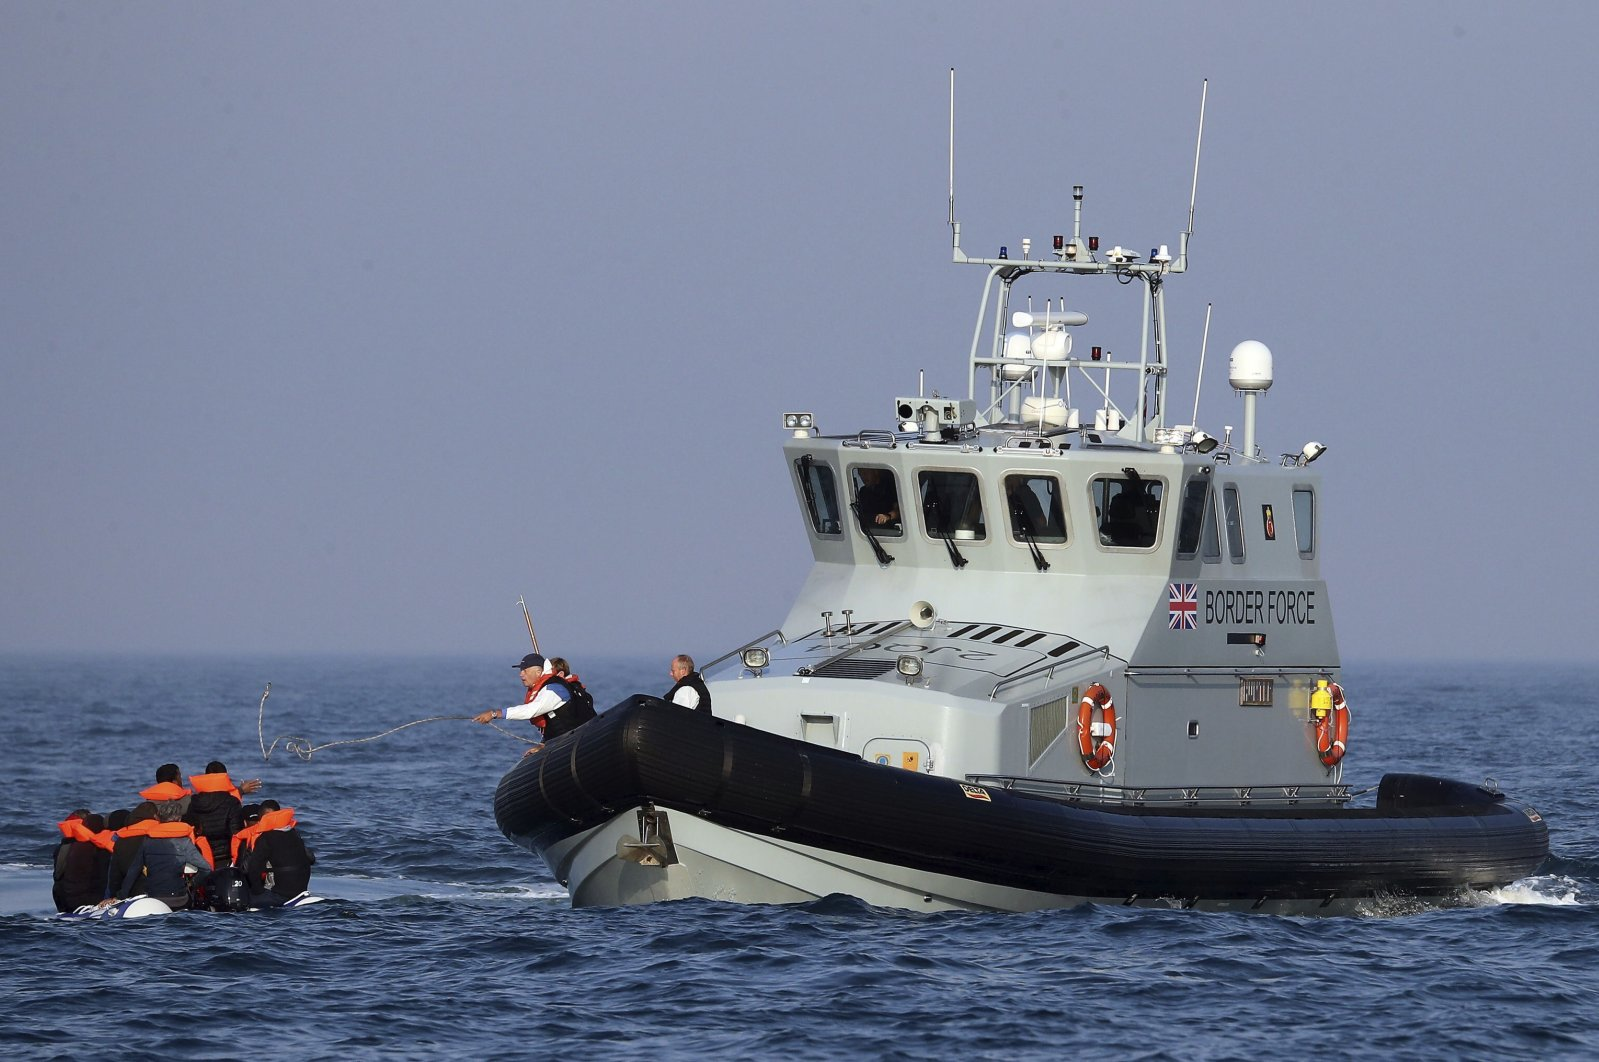 A Border Force vessel assists a group of people thought to be migrants traveling on an inflatable dinghy in the English Channel, Britain, Aug. 10, 2020. (AP Photo)